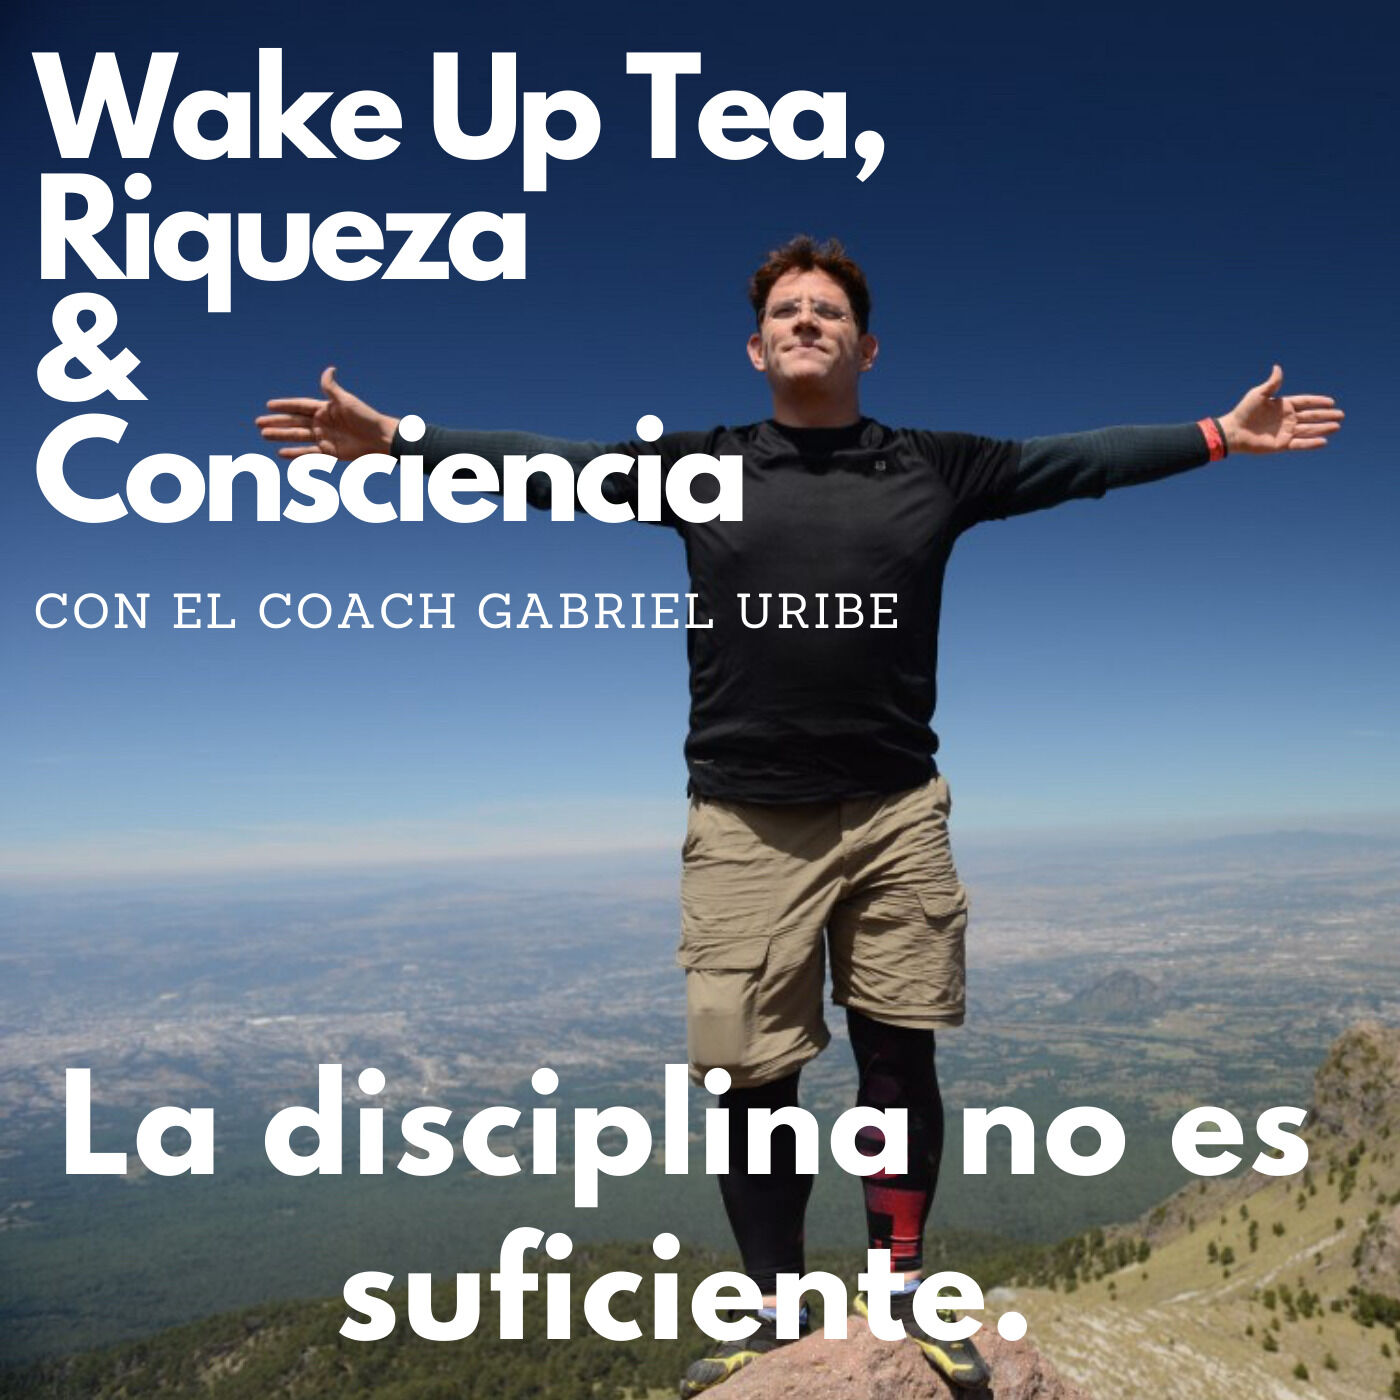 La disciplina no es suficiente.